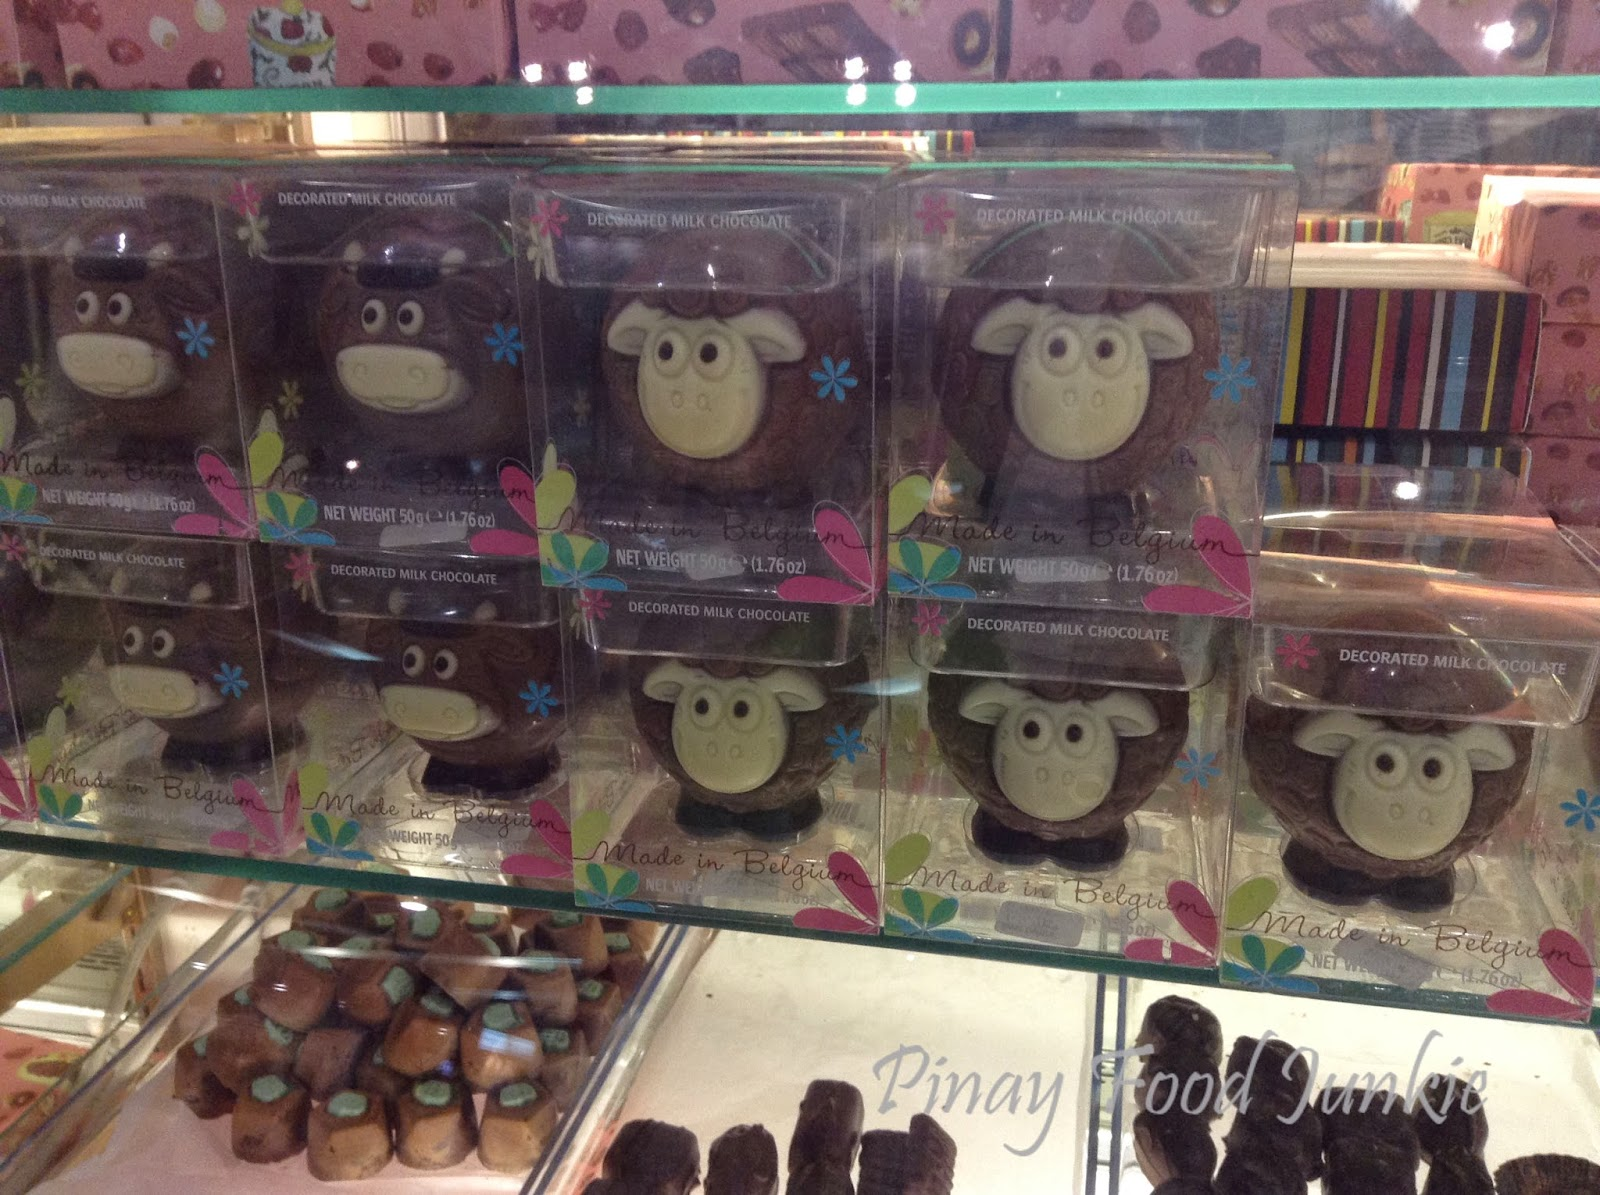 Chocolate Festival choco sheep